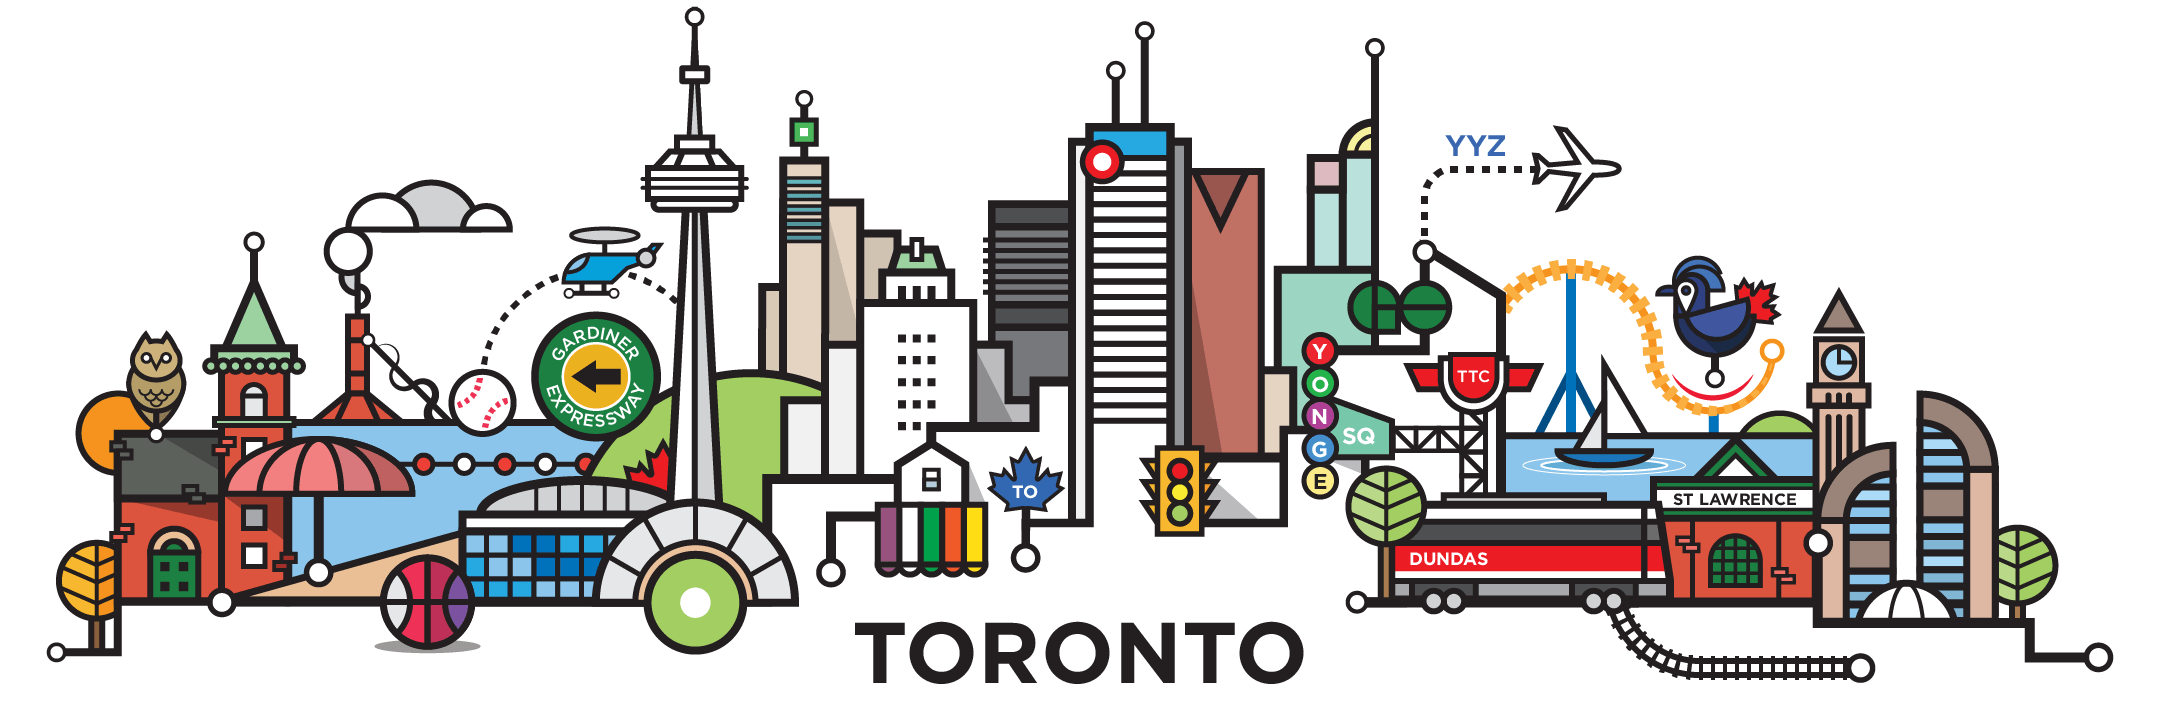 toronto-cityline-illustration-by-loogart